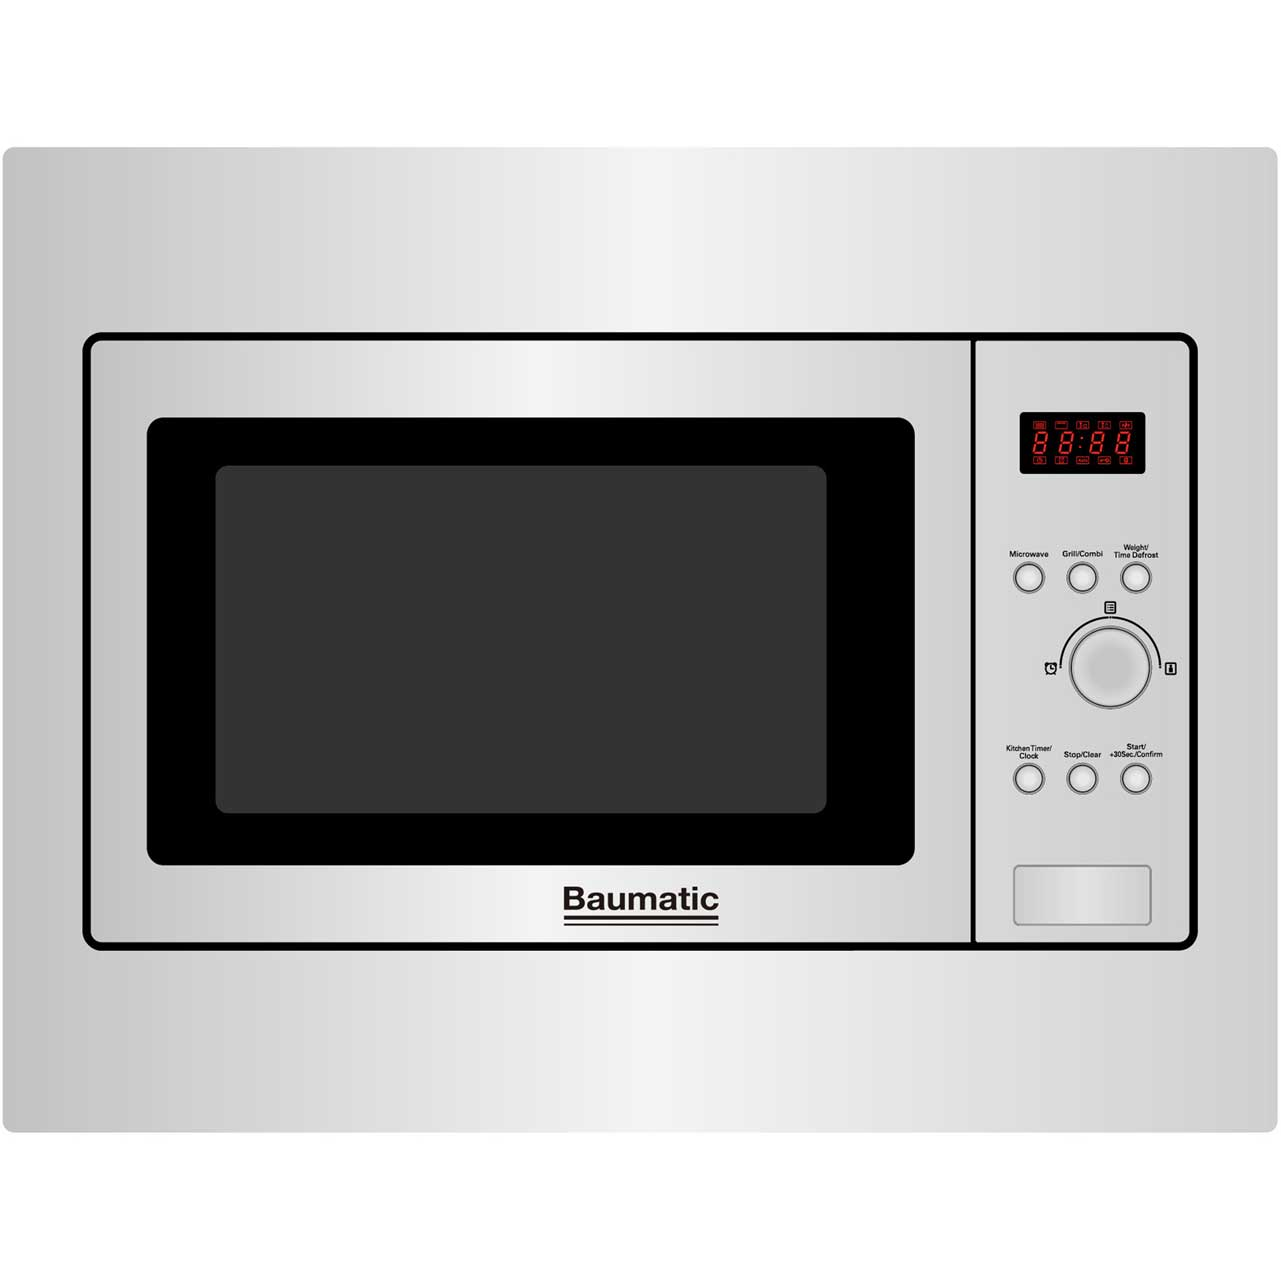 Baumatic BMIC4625 Integrated Microwave Oven in Stainless Steel